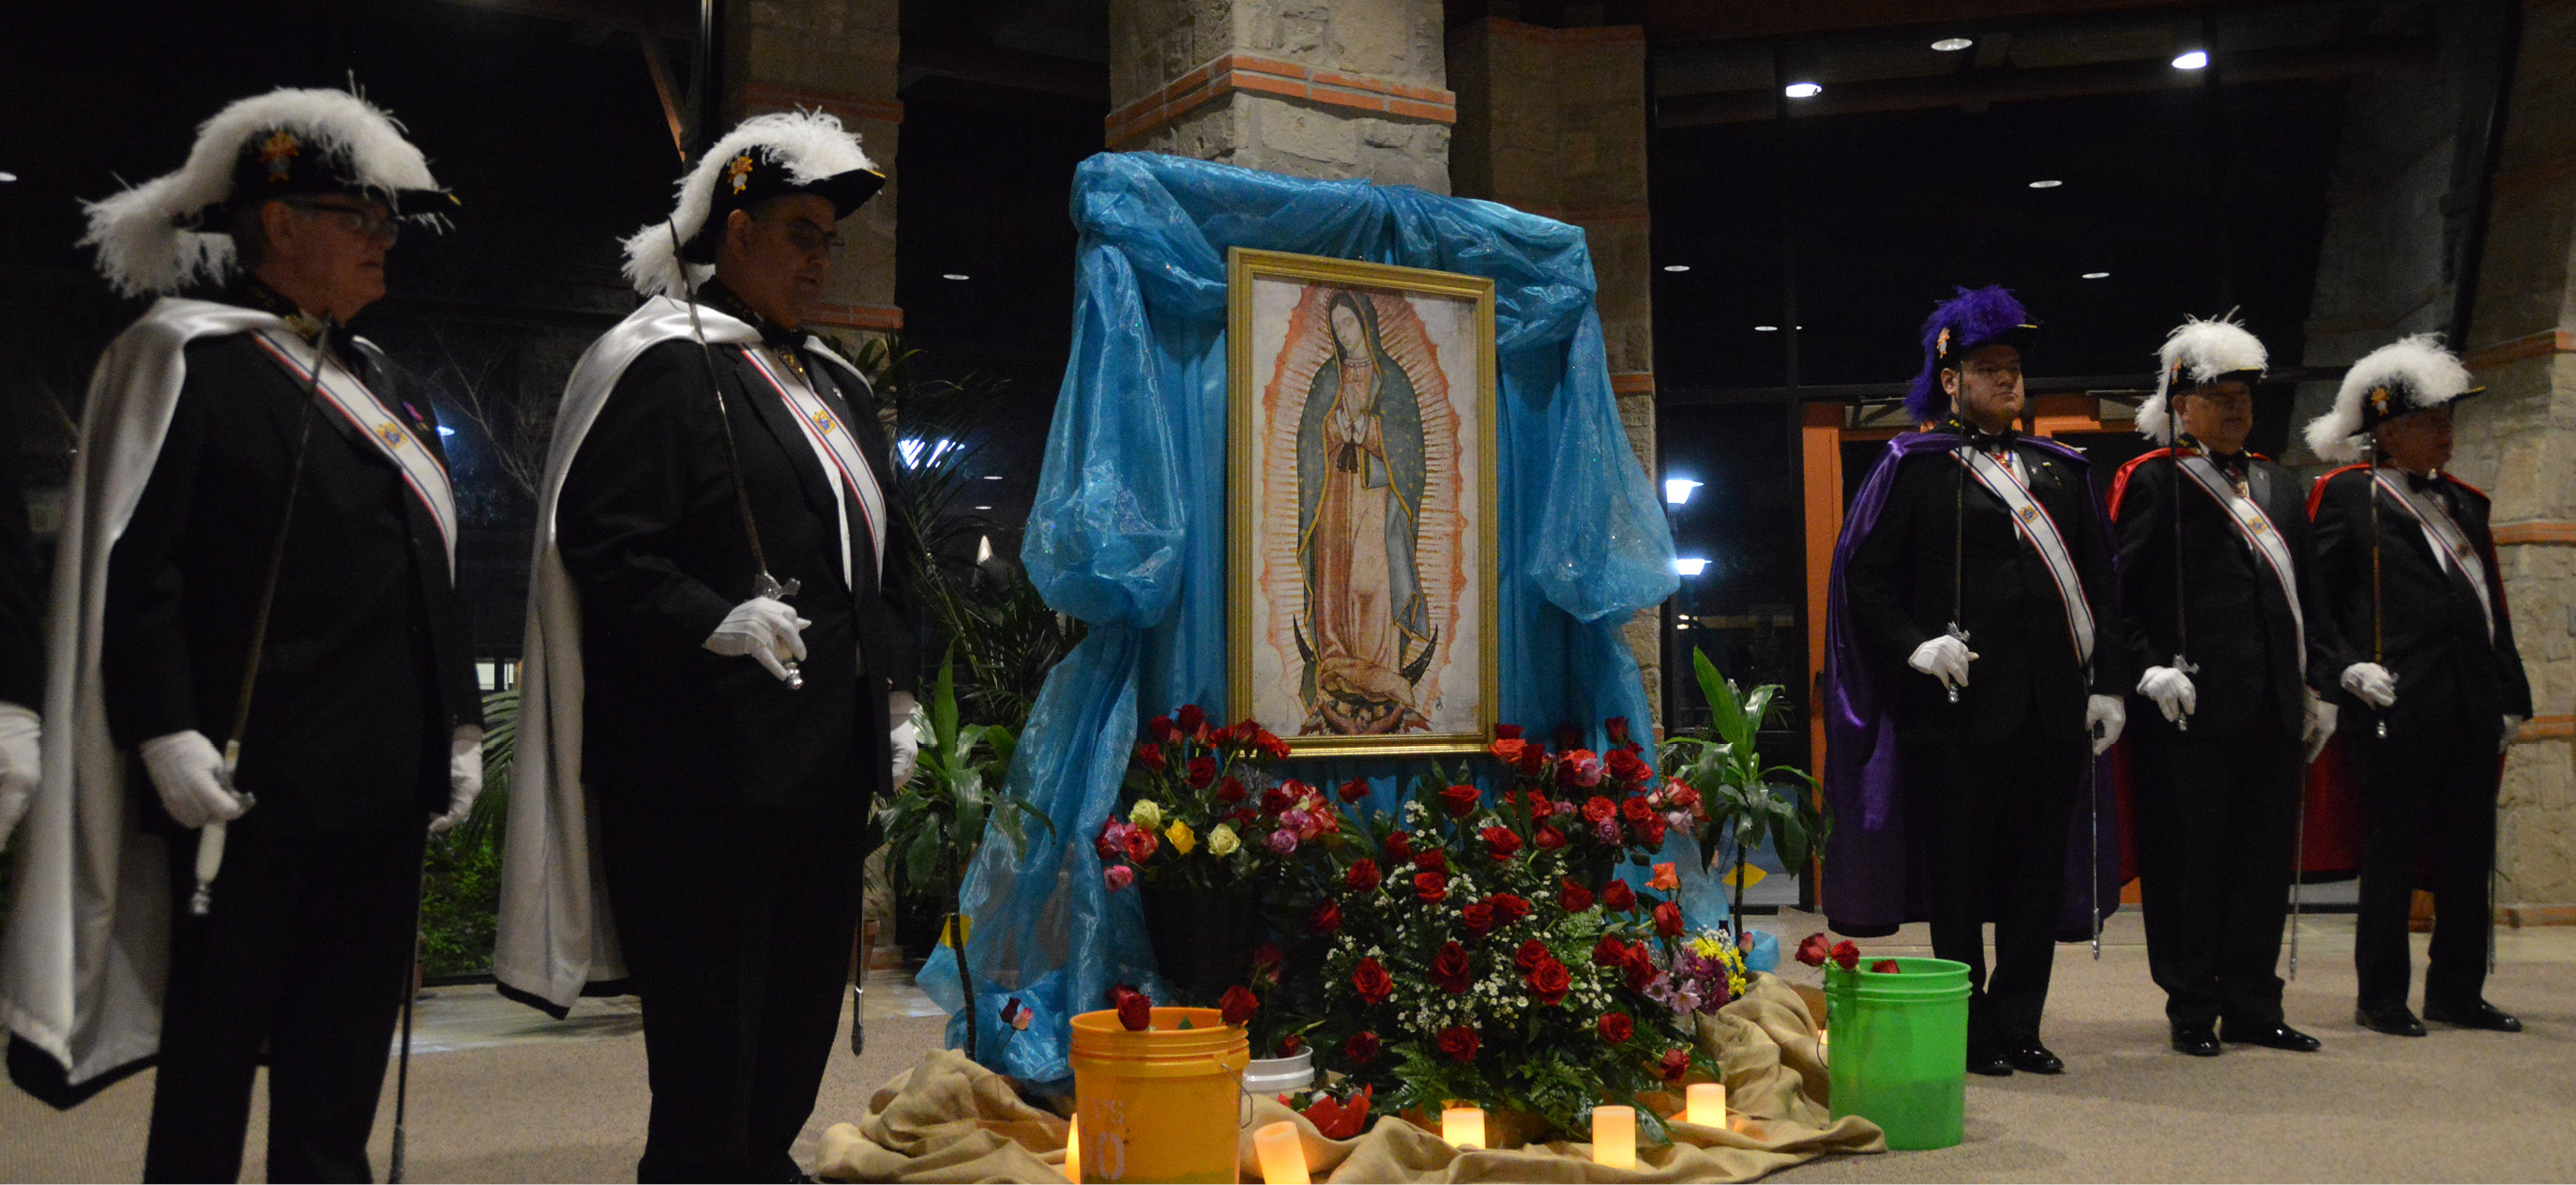 Knights-Our-Lady-of-Guadalupe